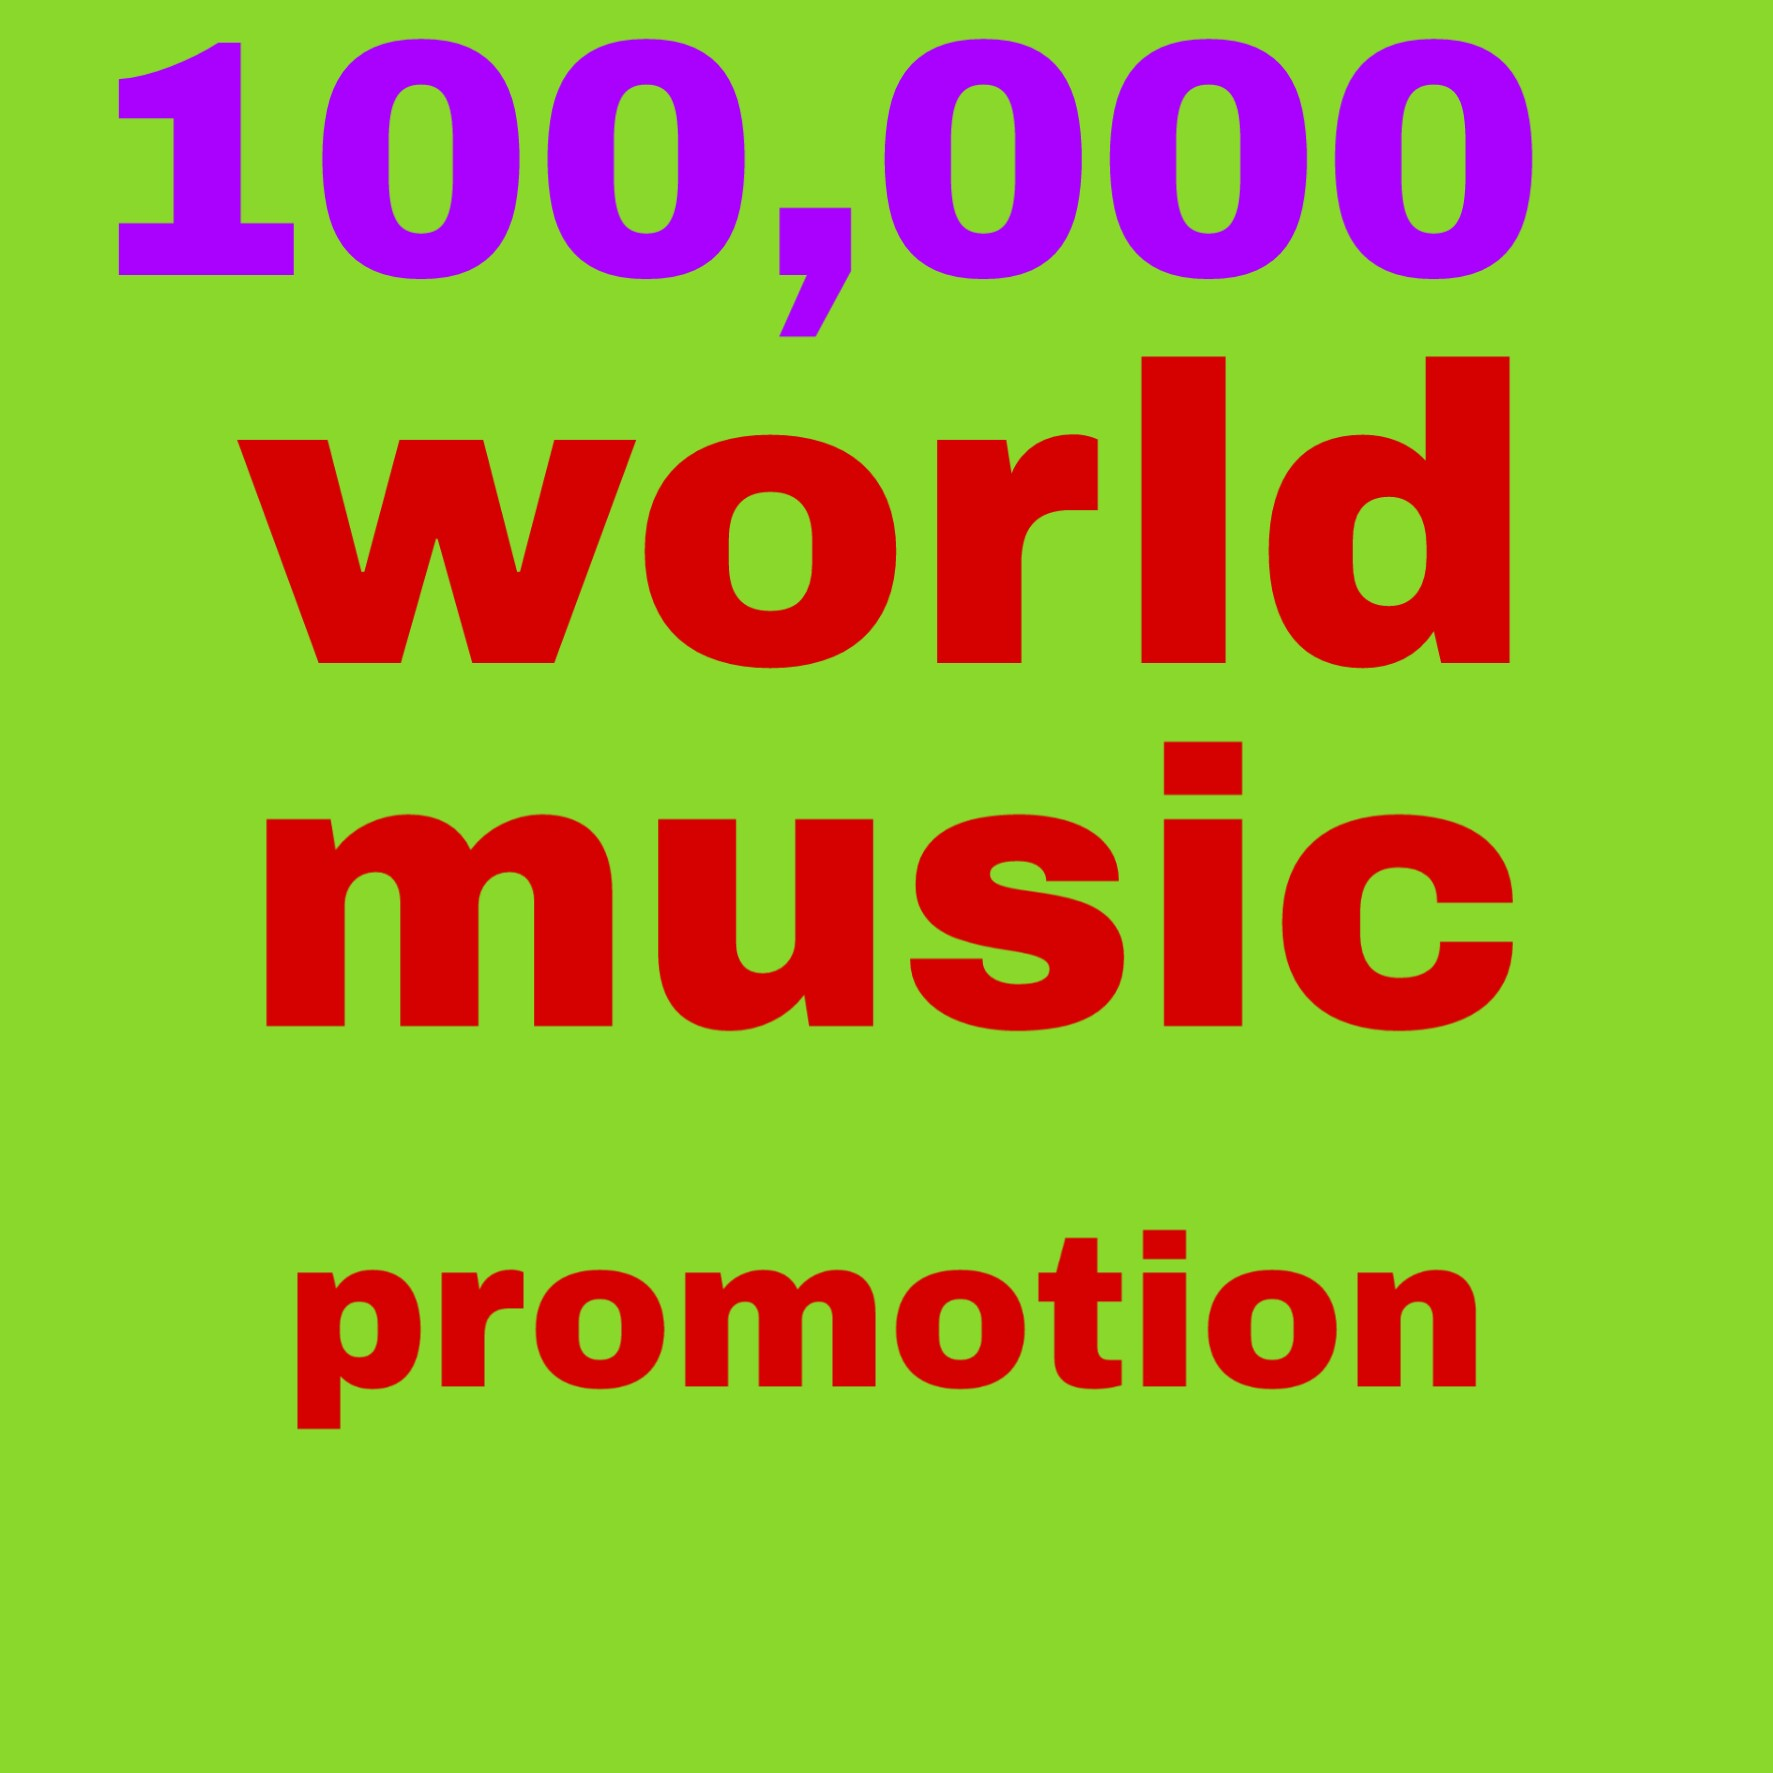 100,000 music video promoteion fast delivery high quality non drop lifetime guaranteed